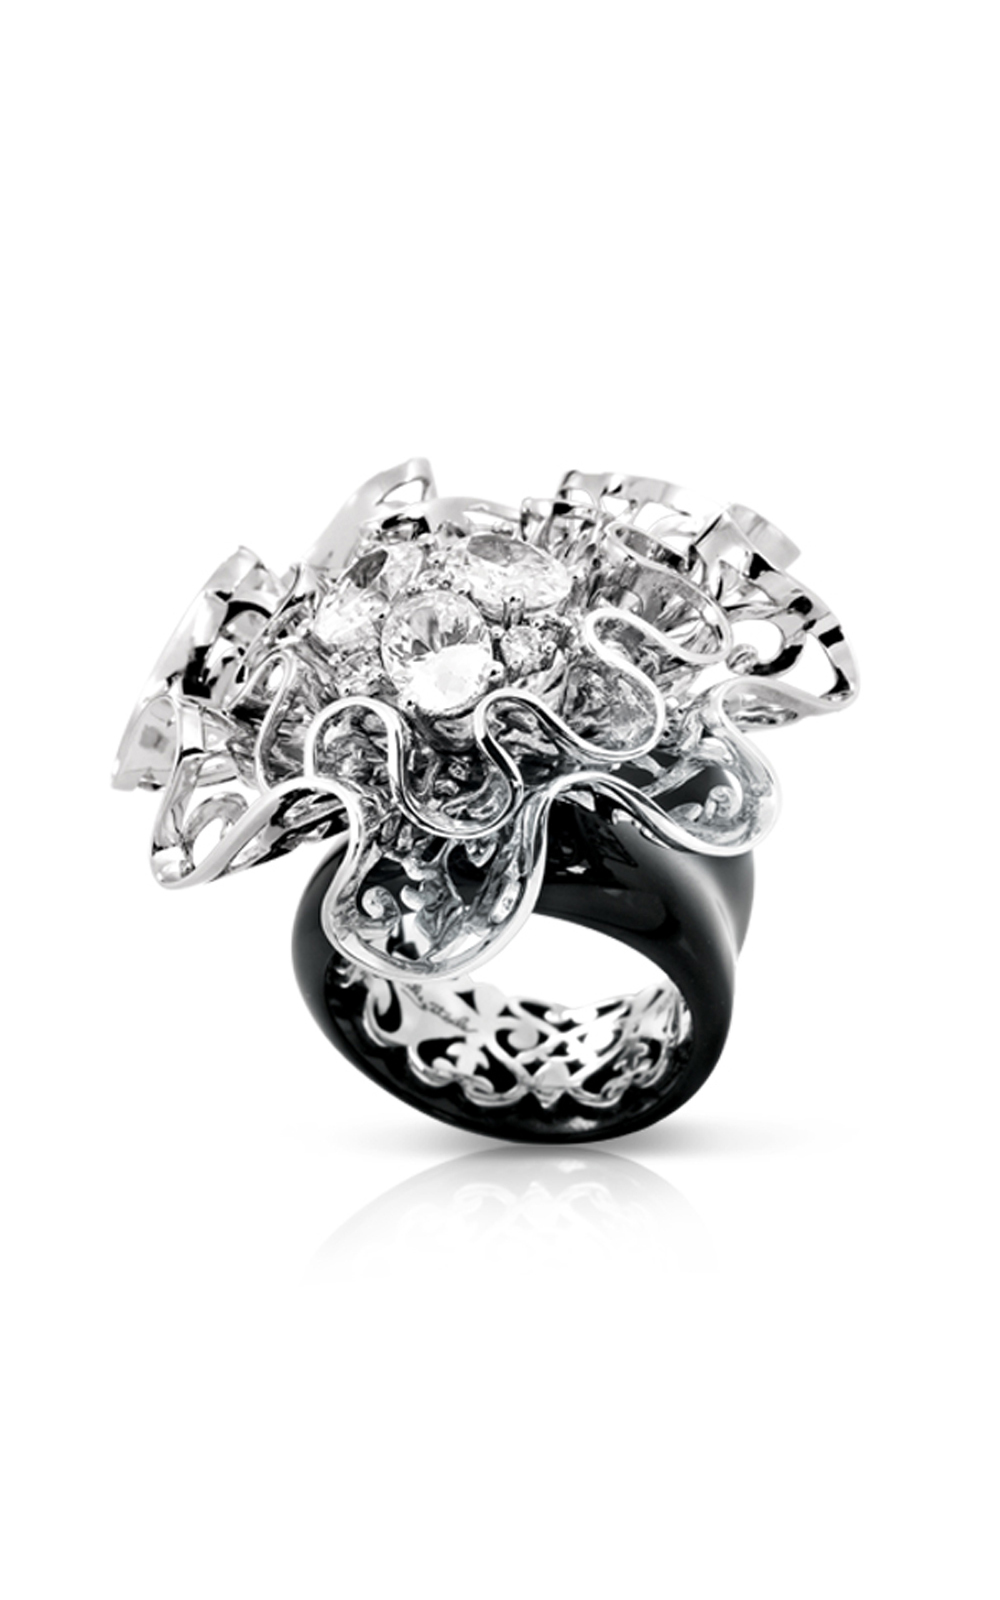 Belle Etoile Corsage Black Ring 01061010301-7 product image